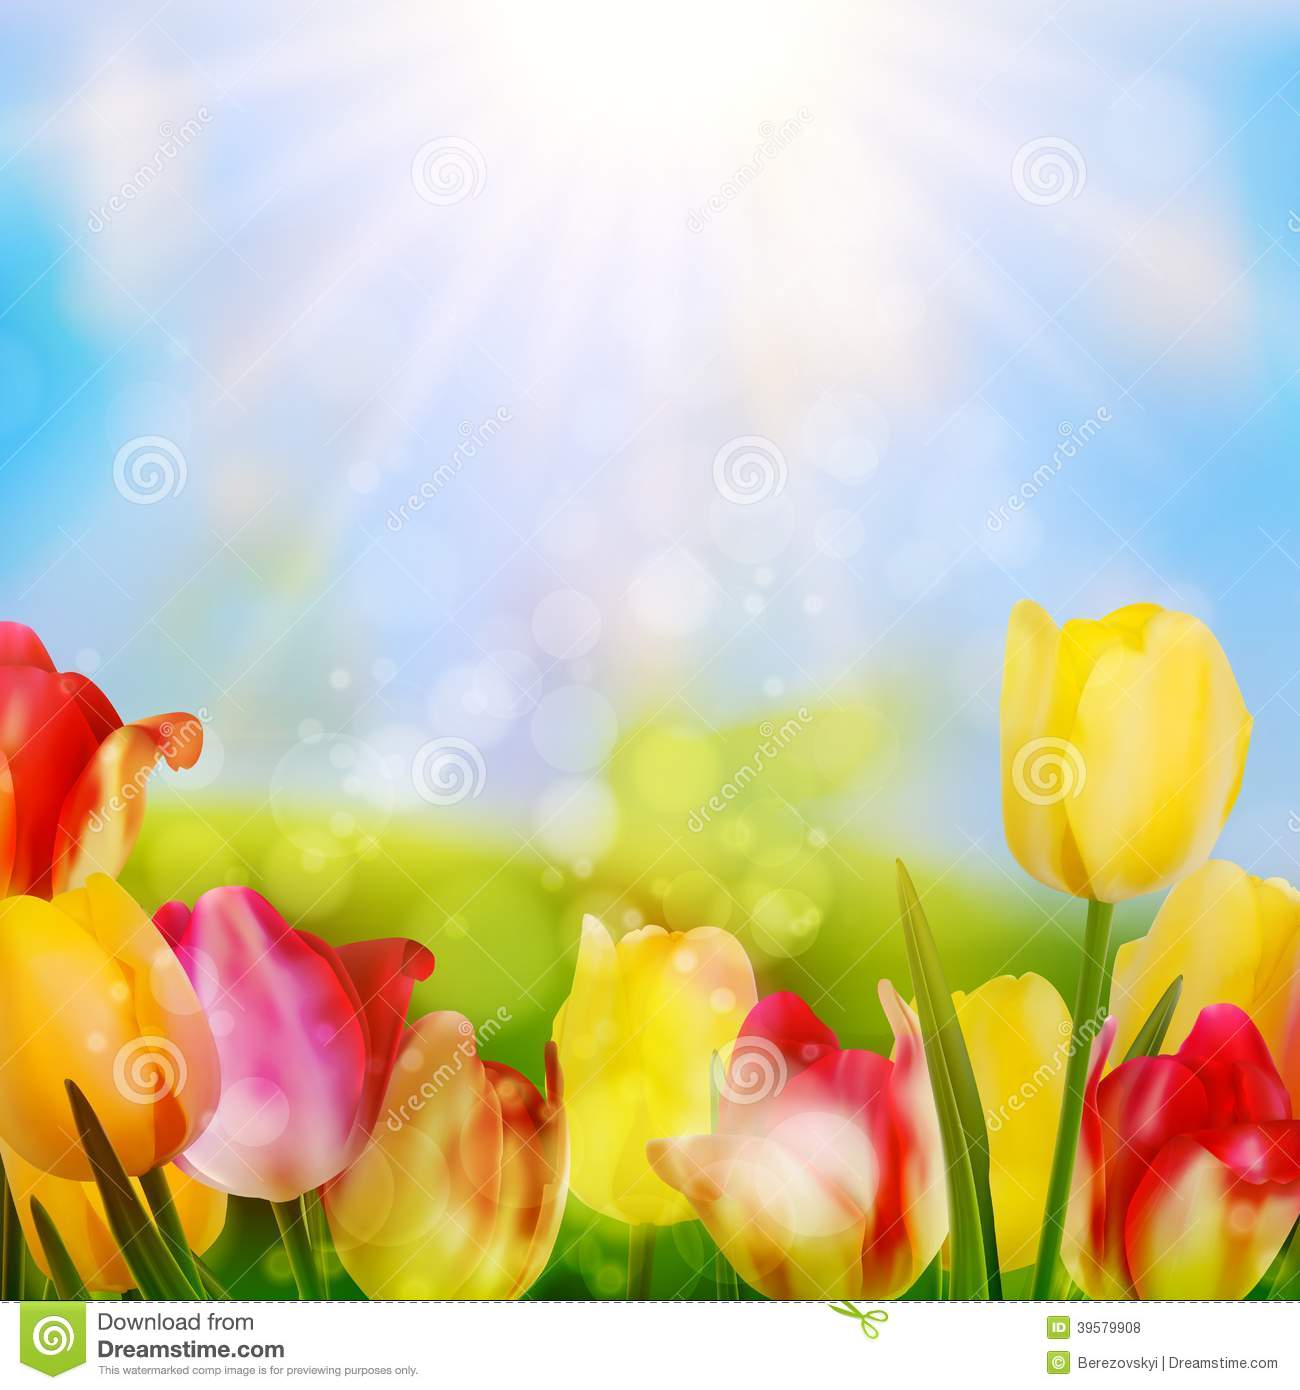 Colorful spring flowers tulips. EPS 10